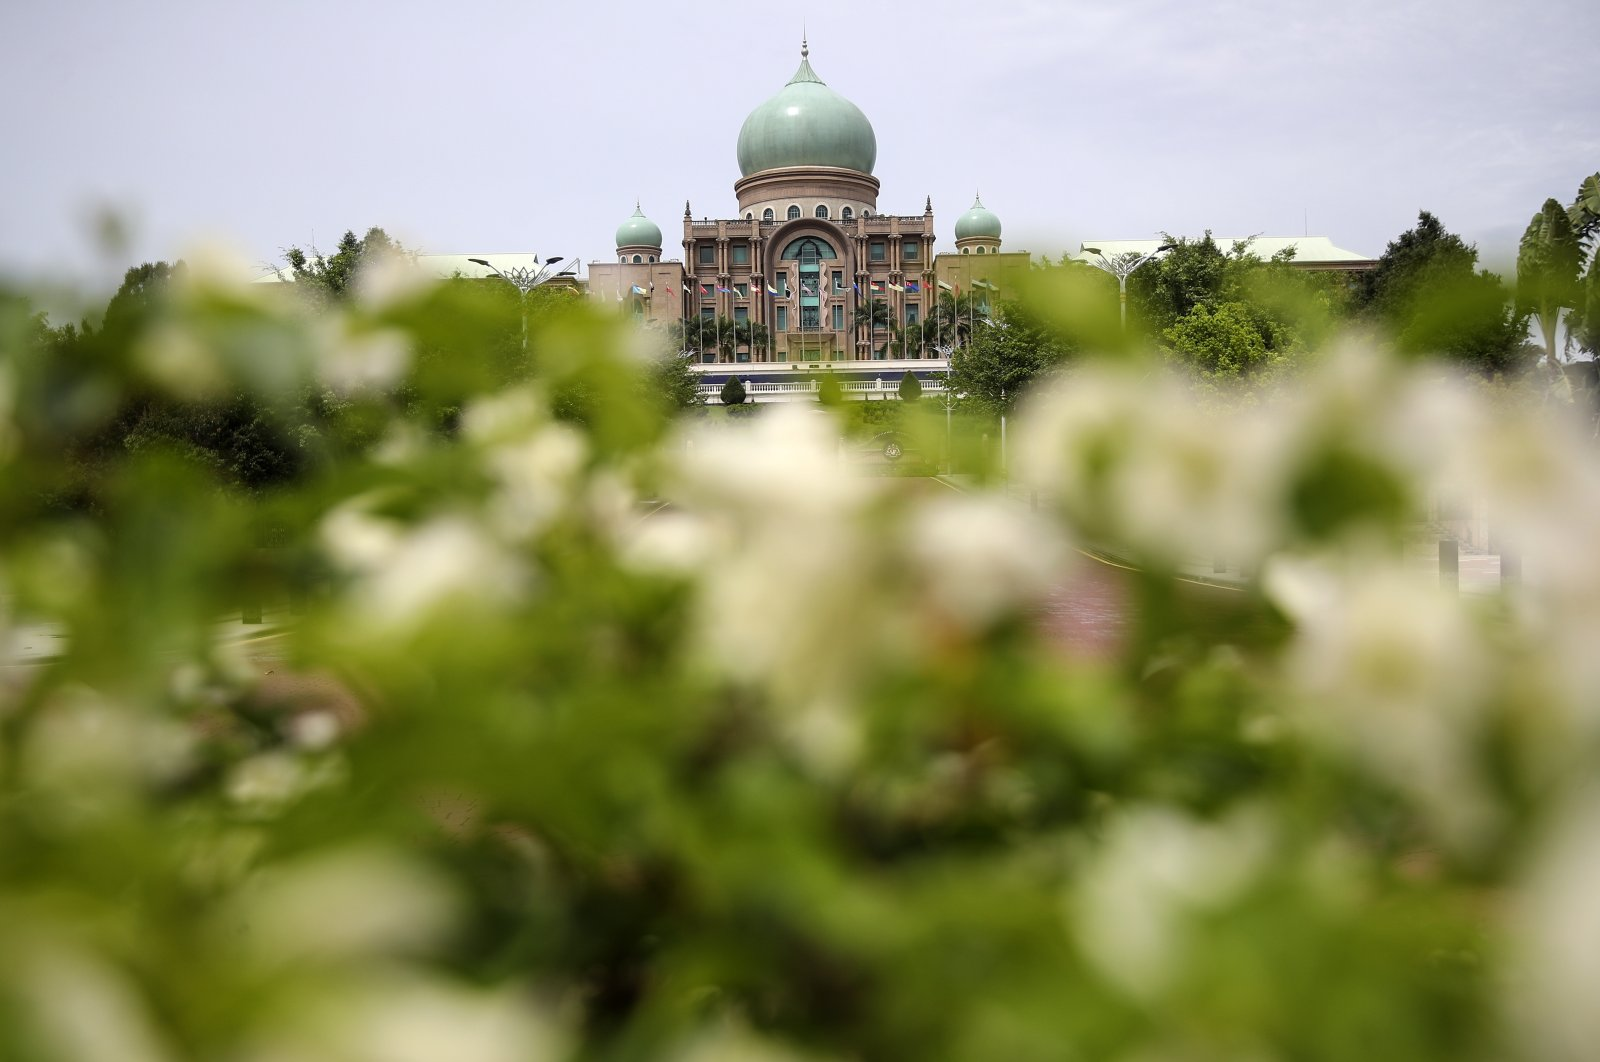 A general view of Prime Minister's Office in Putrajaya, Malaysia, 23 October 2020. Multiple news outlets are reporting that Prime Minister Muhyiddin Yassin is seeking to be conferred special emergency powers to better manage the government's responce to the COVID-19 pandemic, through an audience with the Malaysian King, according to local media reports. (EPA Photo)